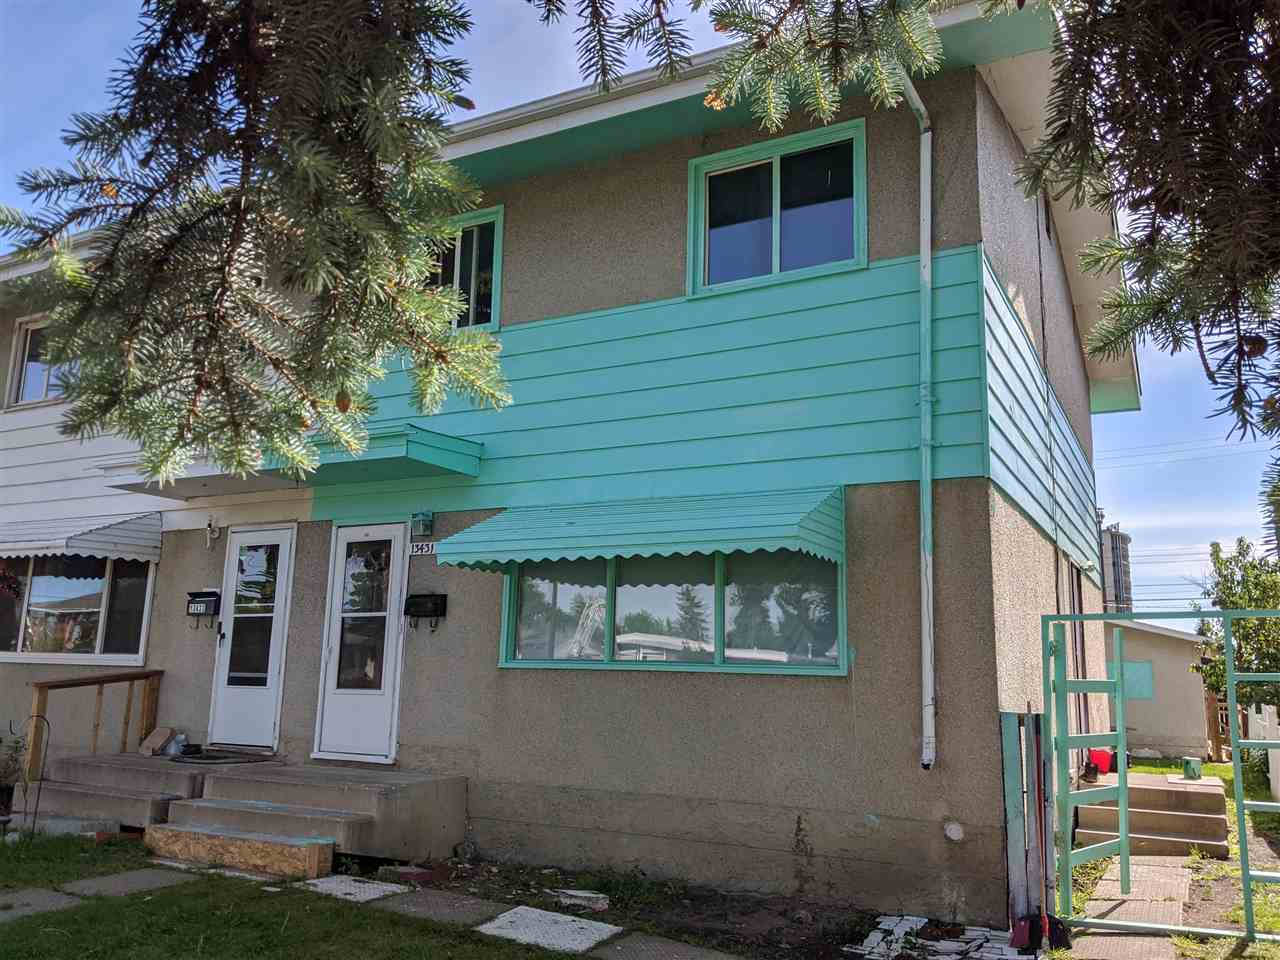 Priced well below Assessed Value of $244,000 !  A must have rental or renovation project with not much more to do than some cosmetic repairs.  Truly a great opportunity for someone looking to add a property to their portfolio. It features a newer furnace and hot water tank.  A double car garage with a nice parking pad behind it with ample room for parking.  NO CONDO FEES.  Great location off the beaten track.  Priced to sell quickly!